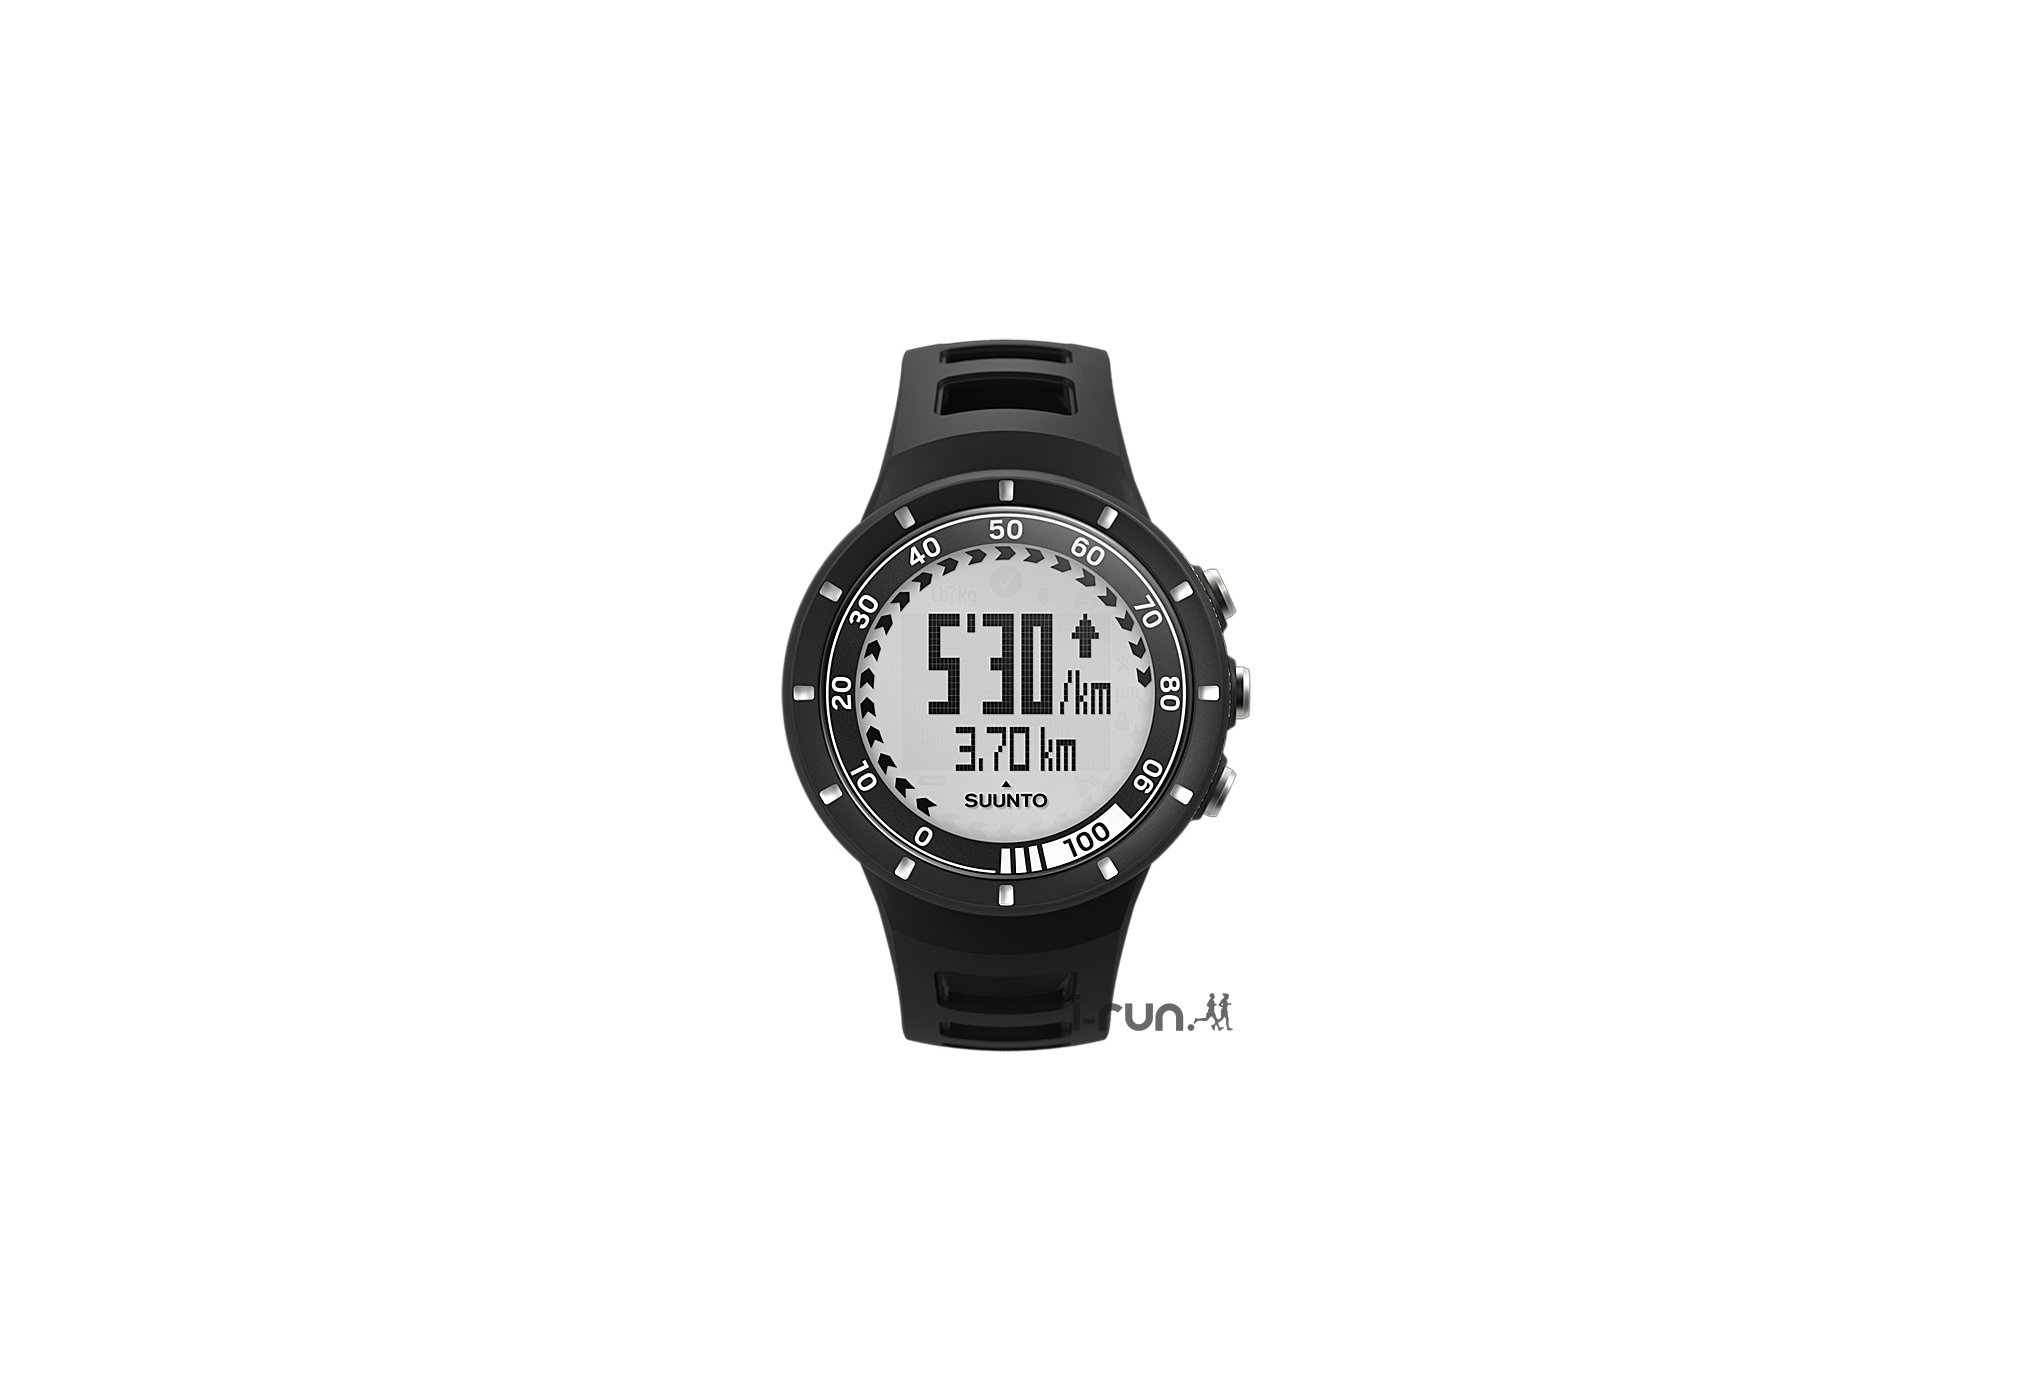 montre cardio suunto quest running. Black Bedroom Furniture Sets. Home Design Ideas